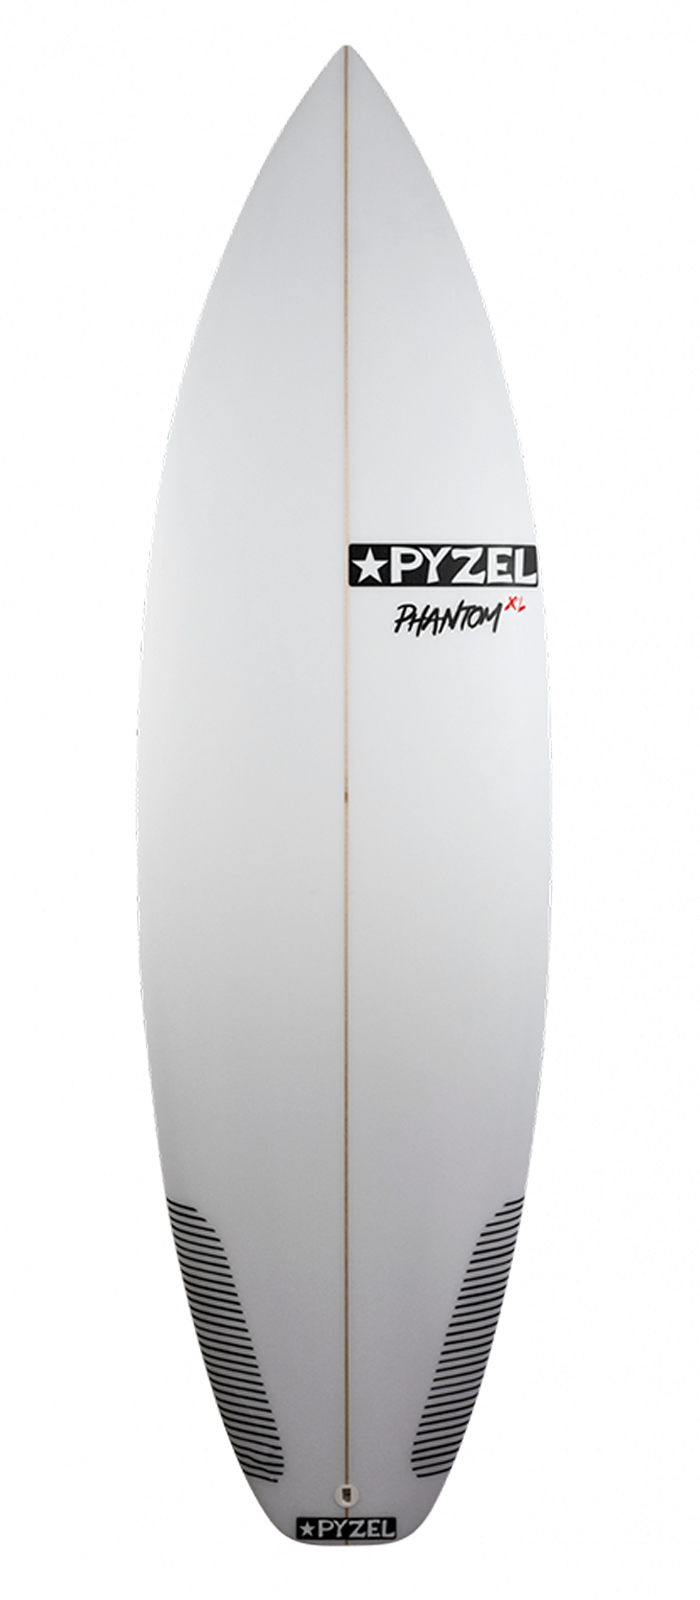 PHANTOM XL surfboard model